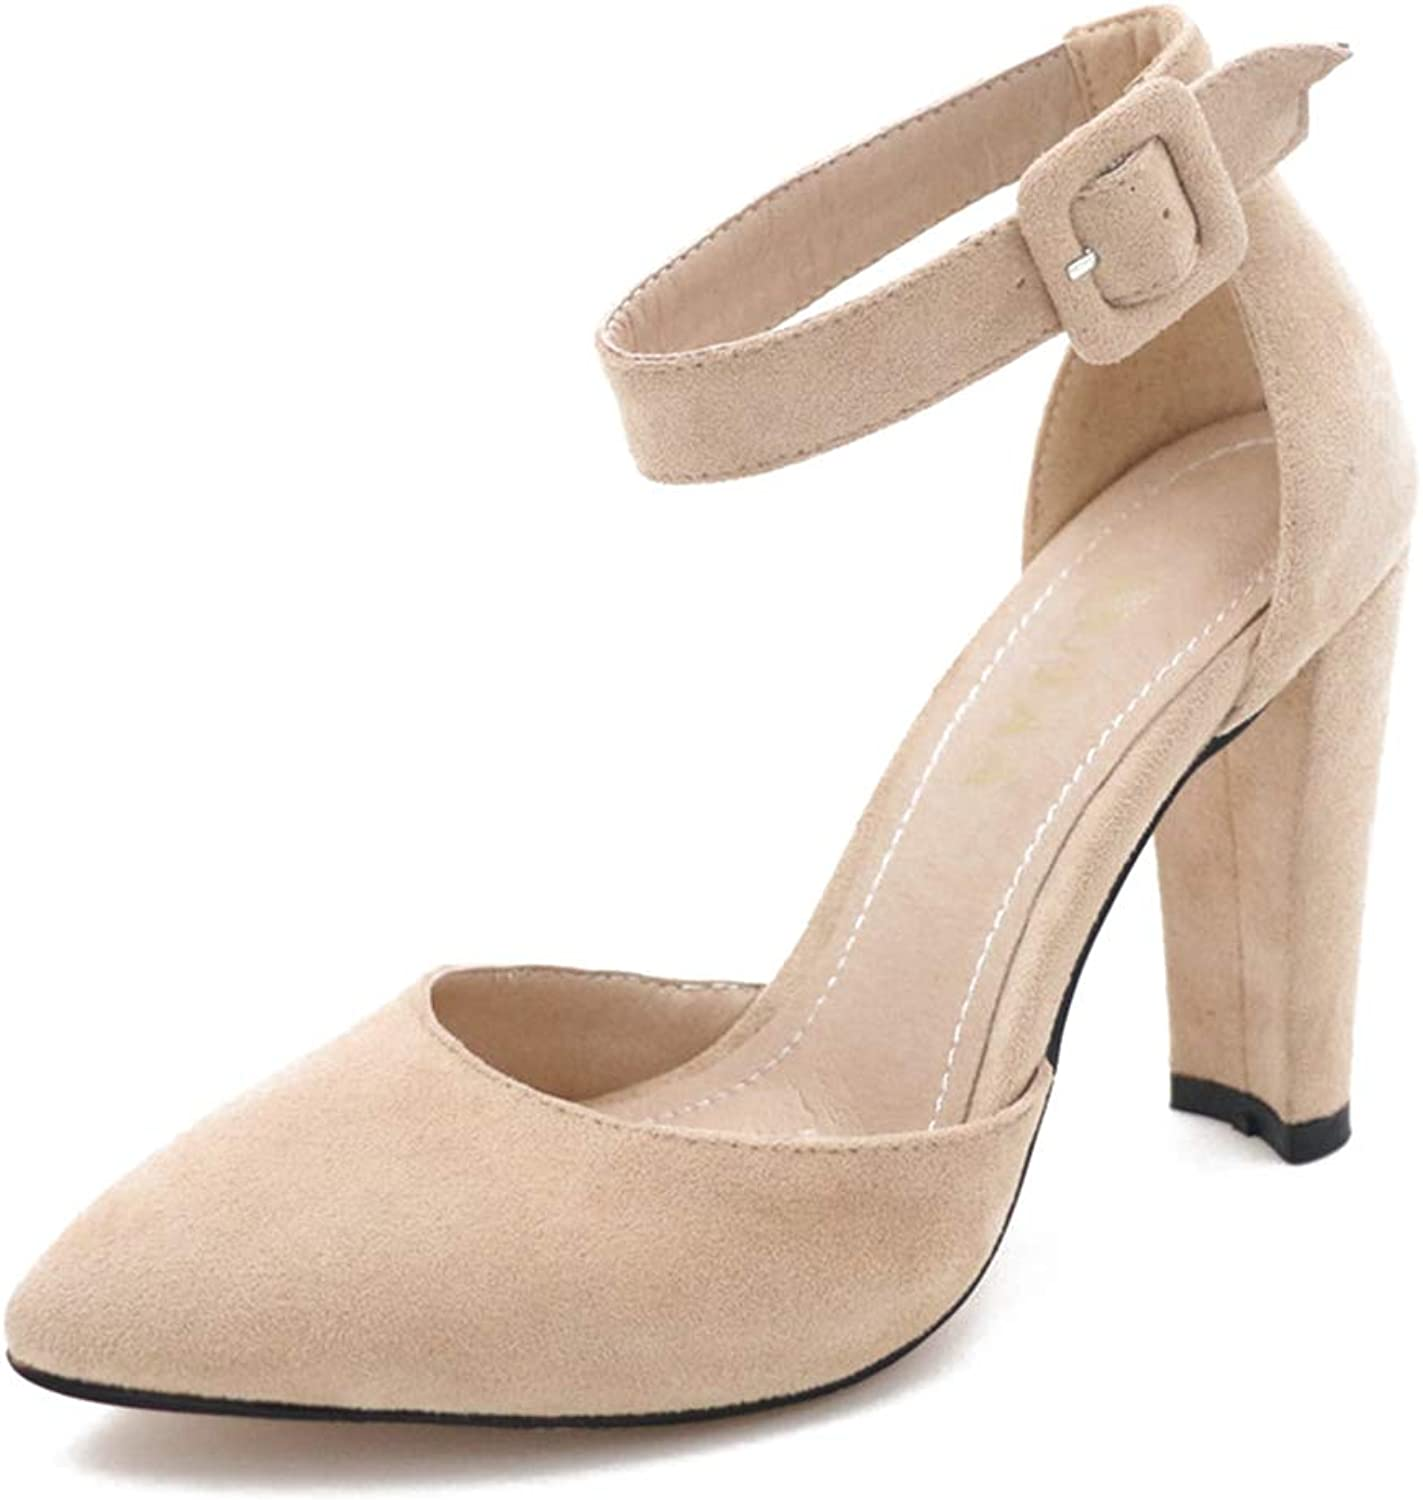 Ladies Sandals Wedding Party shoes Square High Heels Women Pumps Summer Pointed Toe Sandal